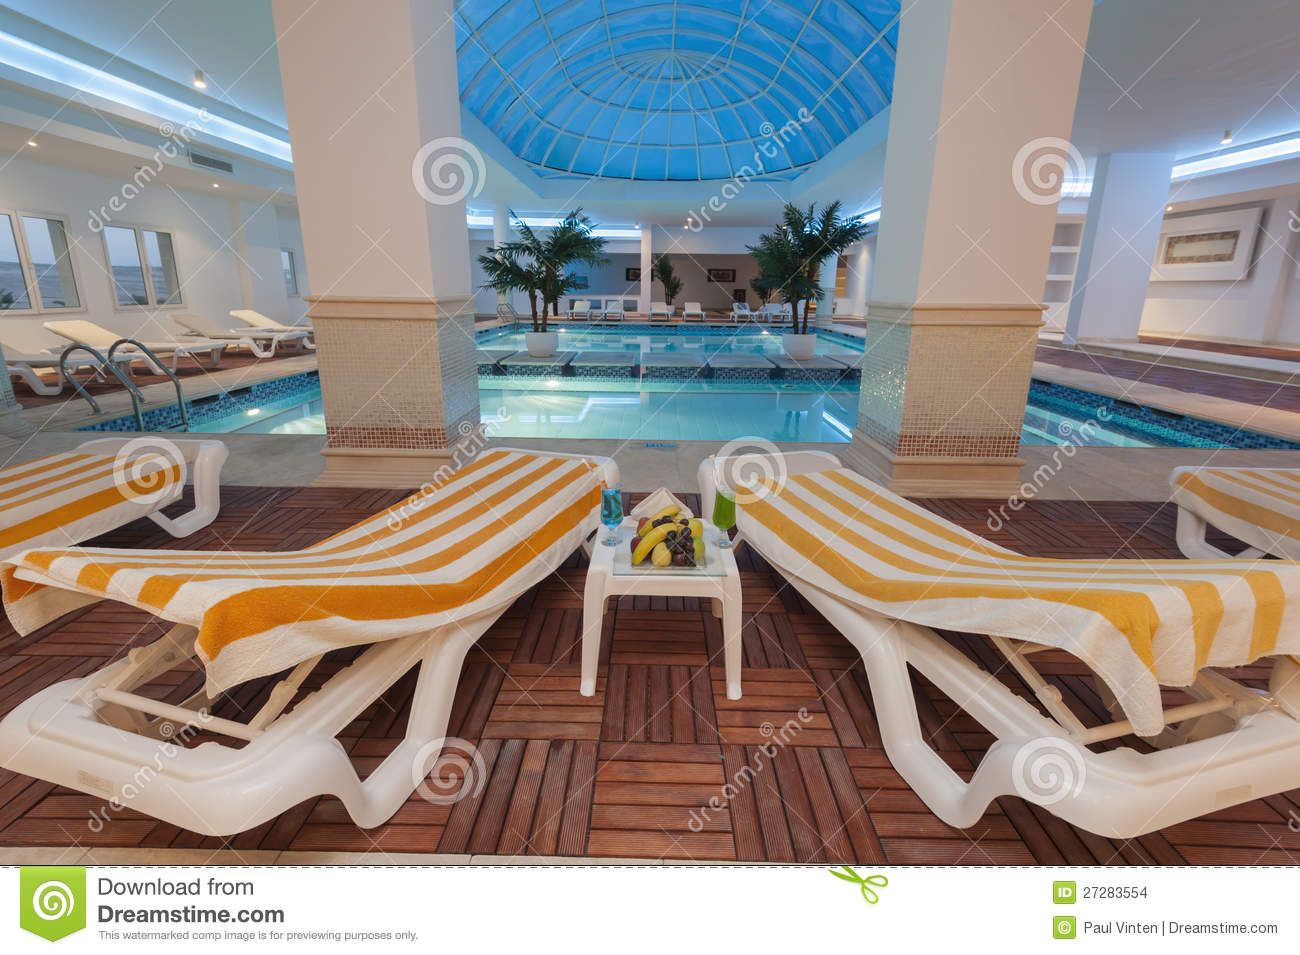 Indoor pool at a luxury hotel stock photo image 27283554 for Homes for sale in utah with swimming pools